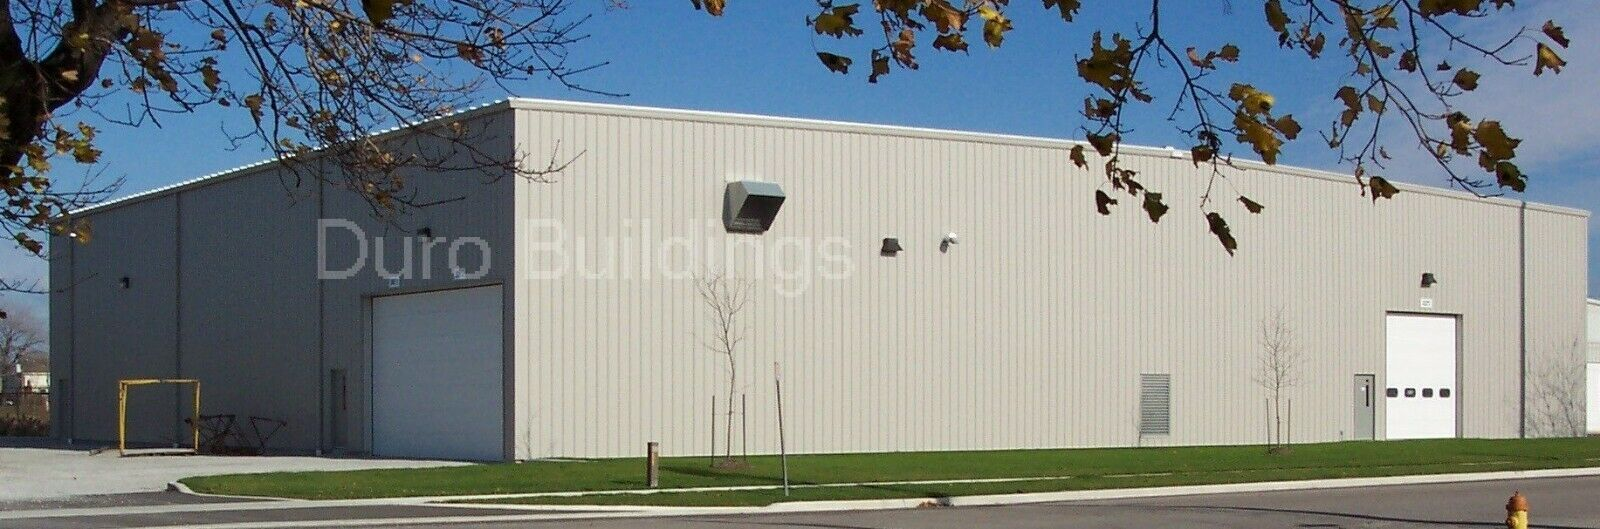 DuroBEAM Steel 100x102x20 American Made Metal Clear Span